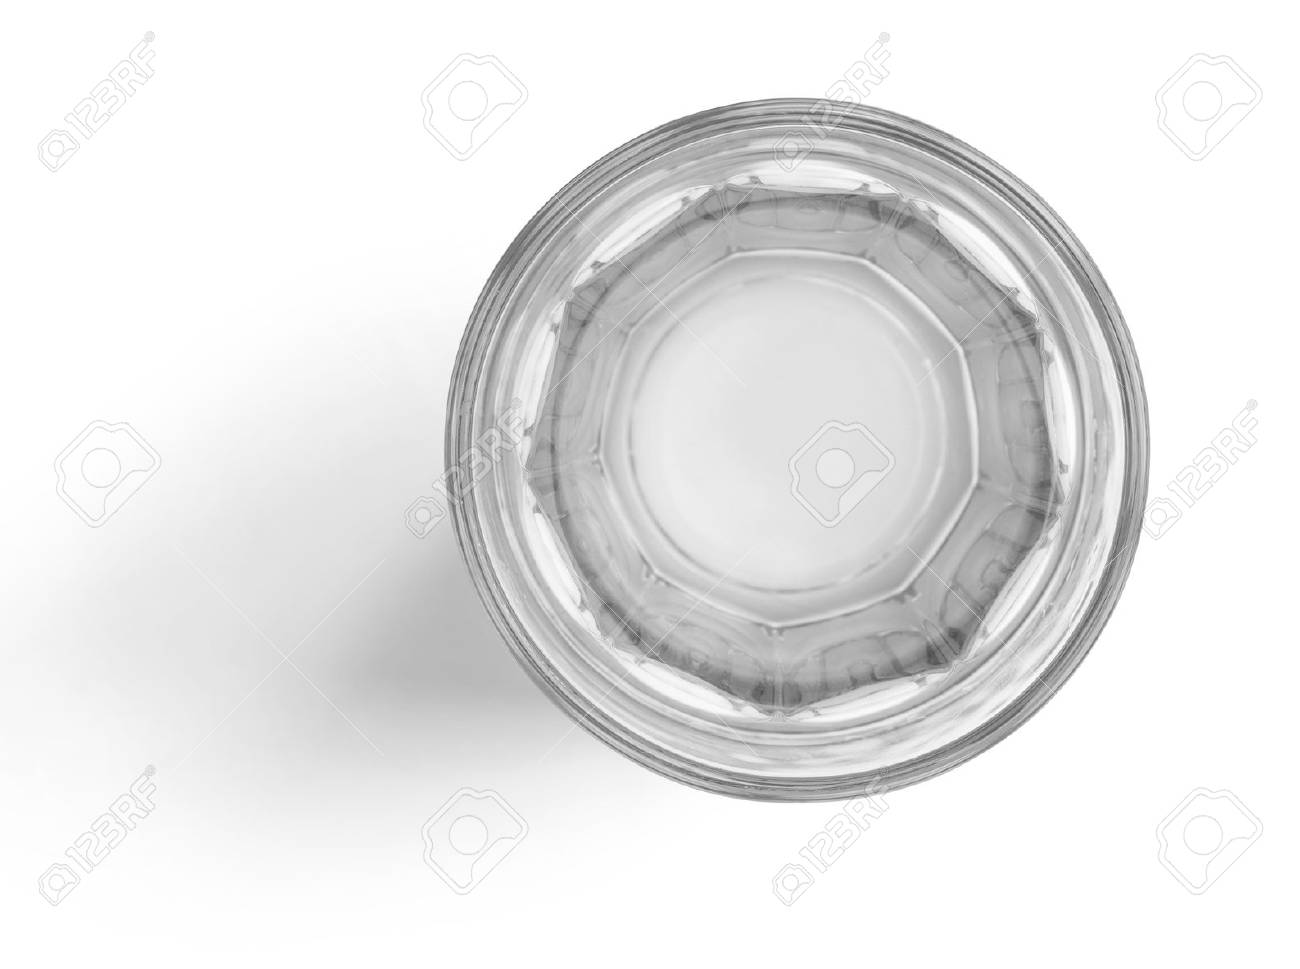 Top view of water glass cup on white background with clipping path - 63455819